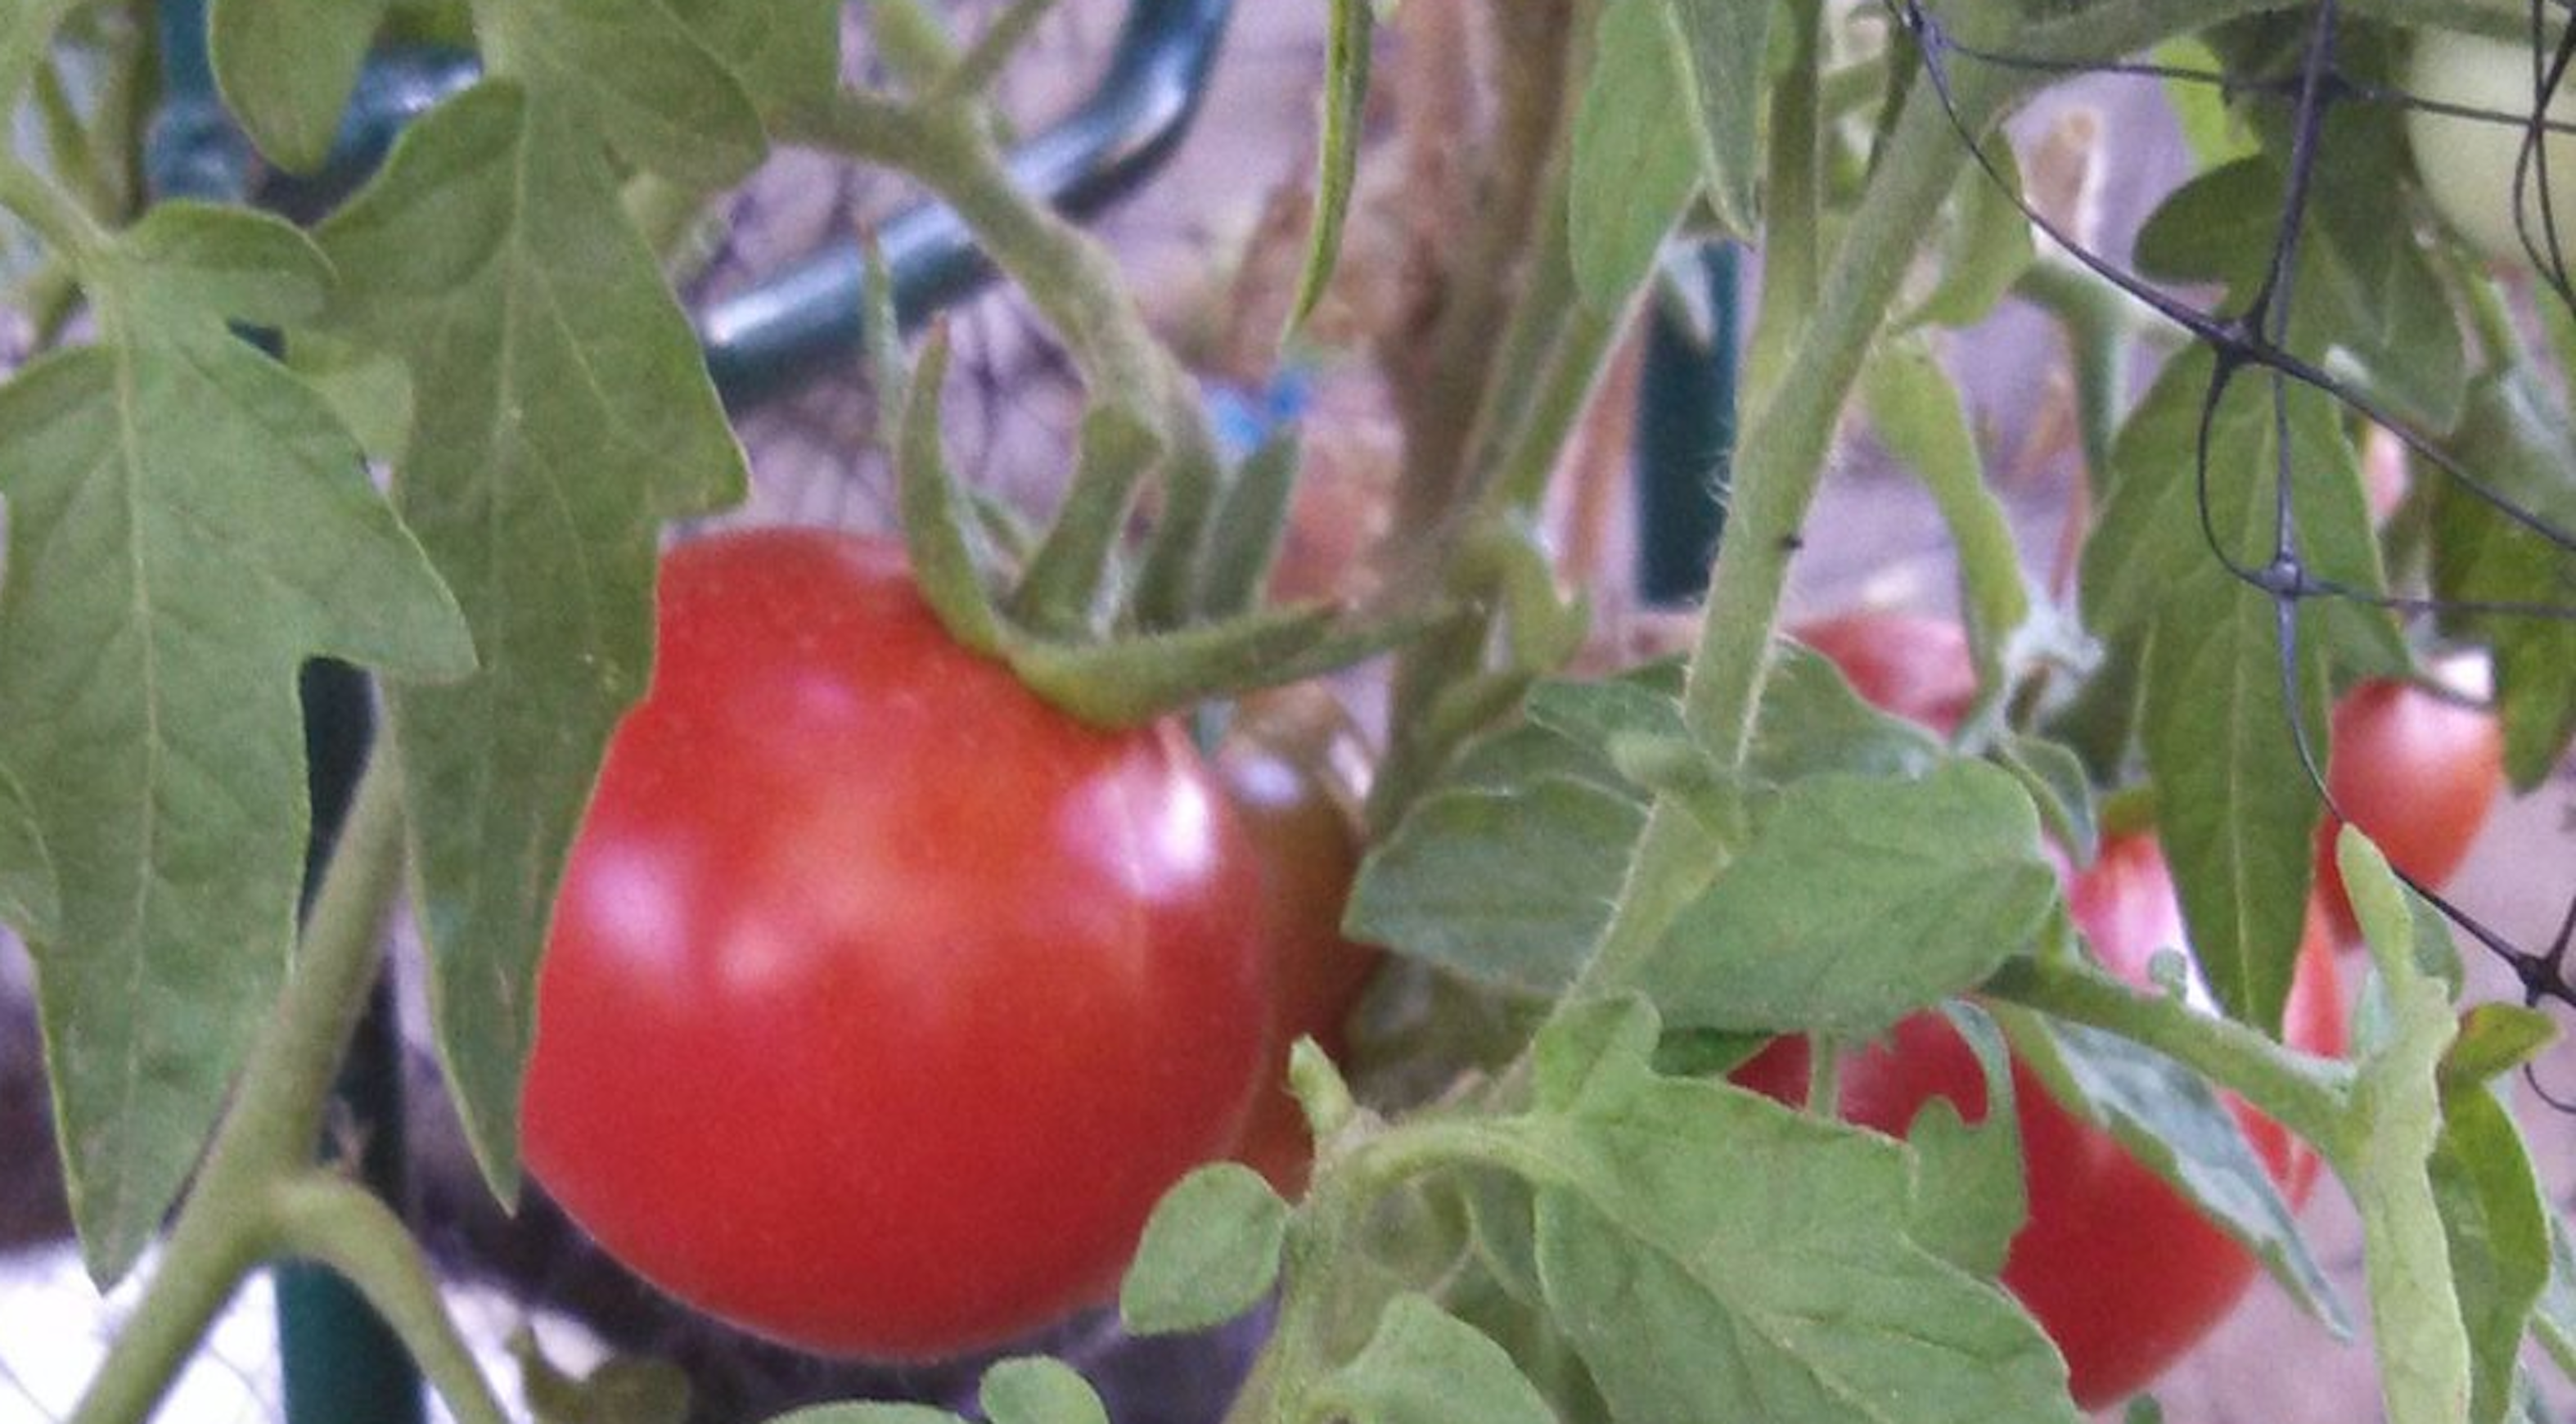 Caring for Tomato Plants in the Desert